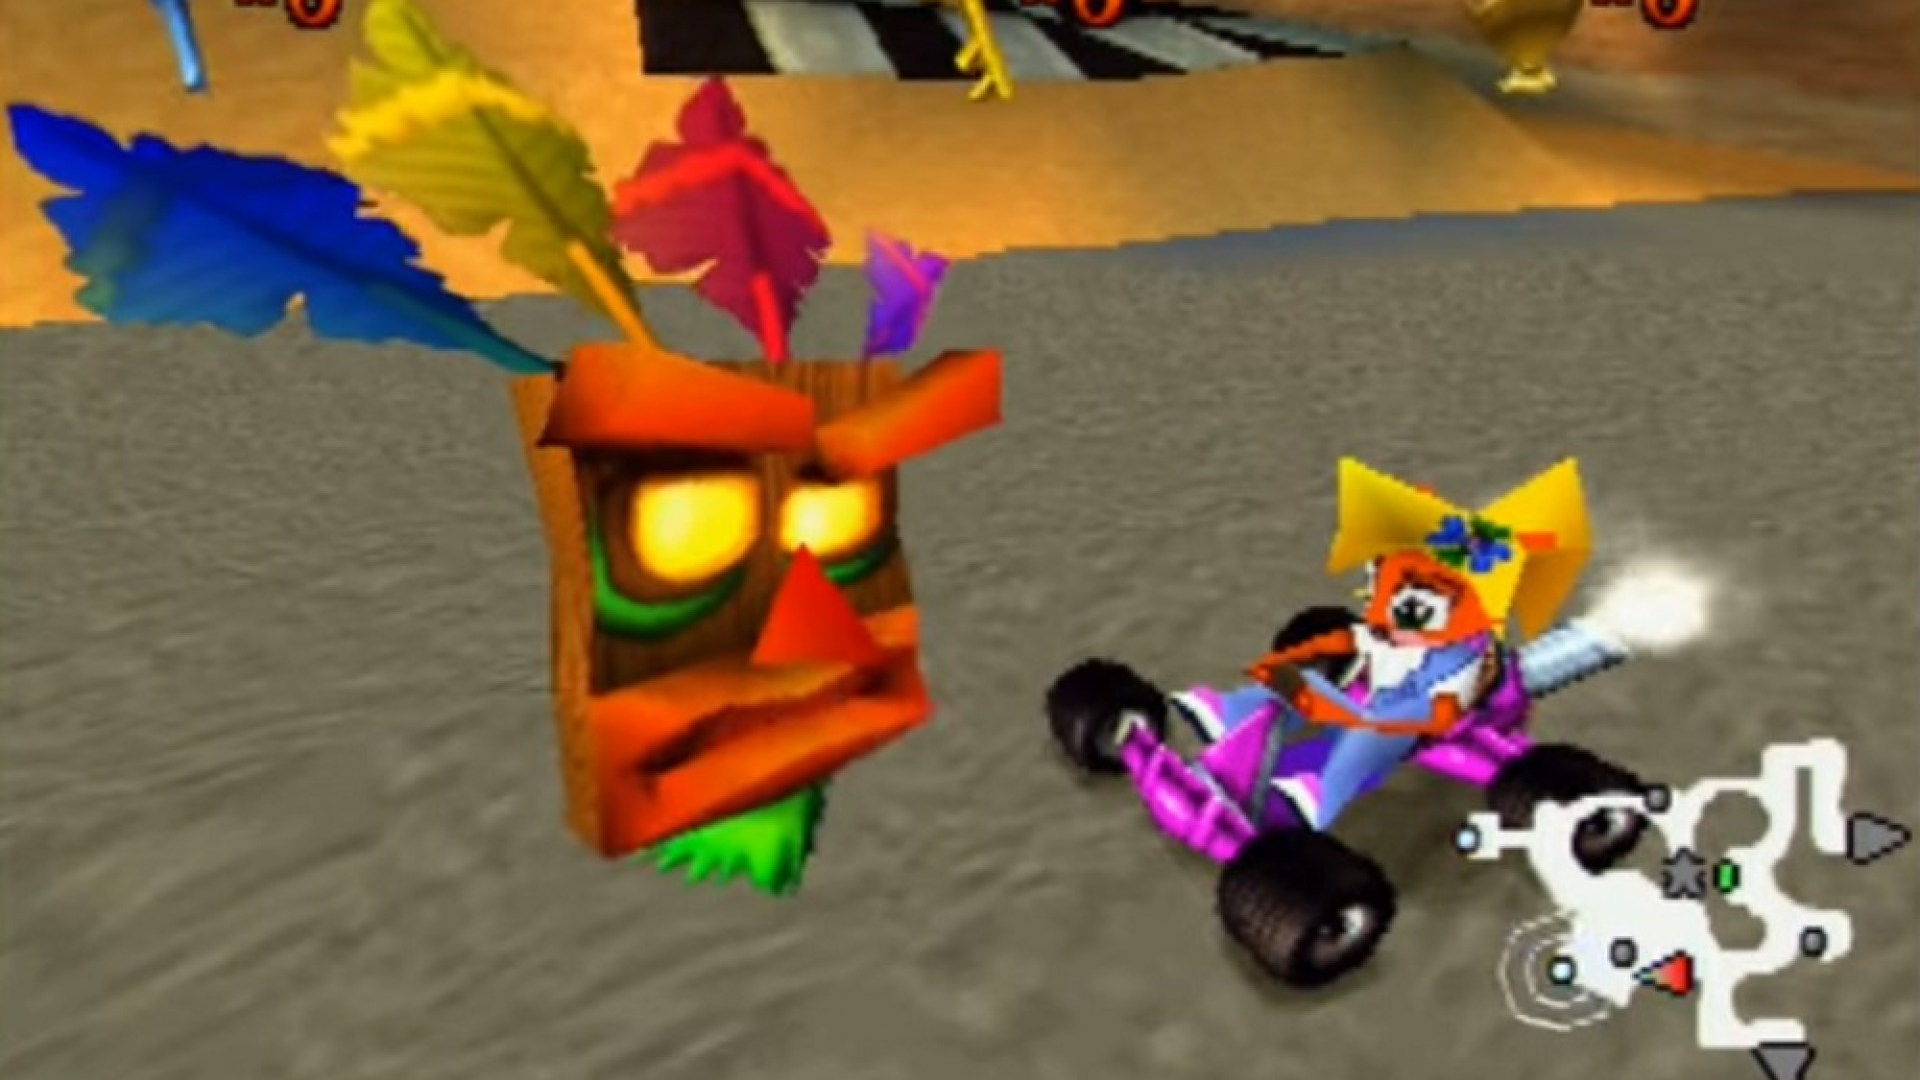 Crash Team Racing Nitro-Fueled announced for Xbox One, Nintendo Switch and PS4